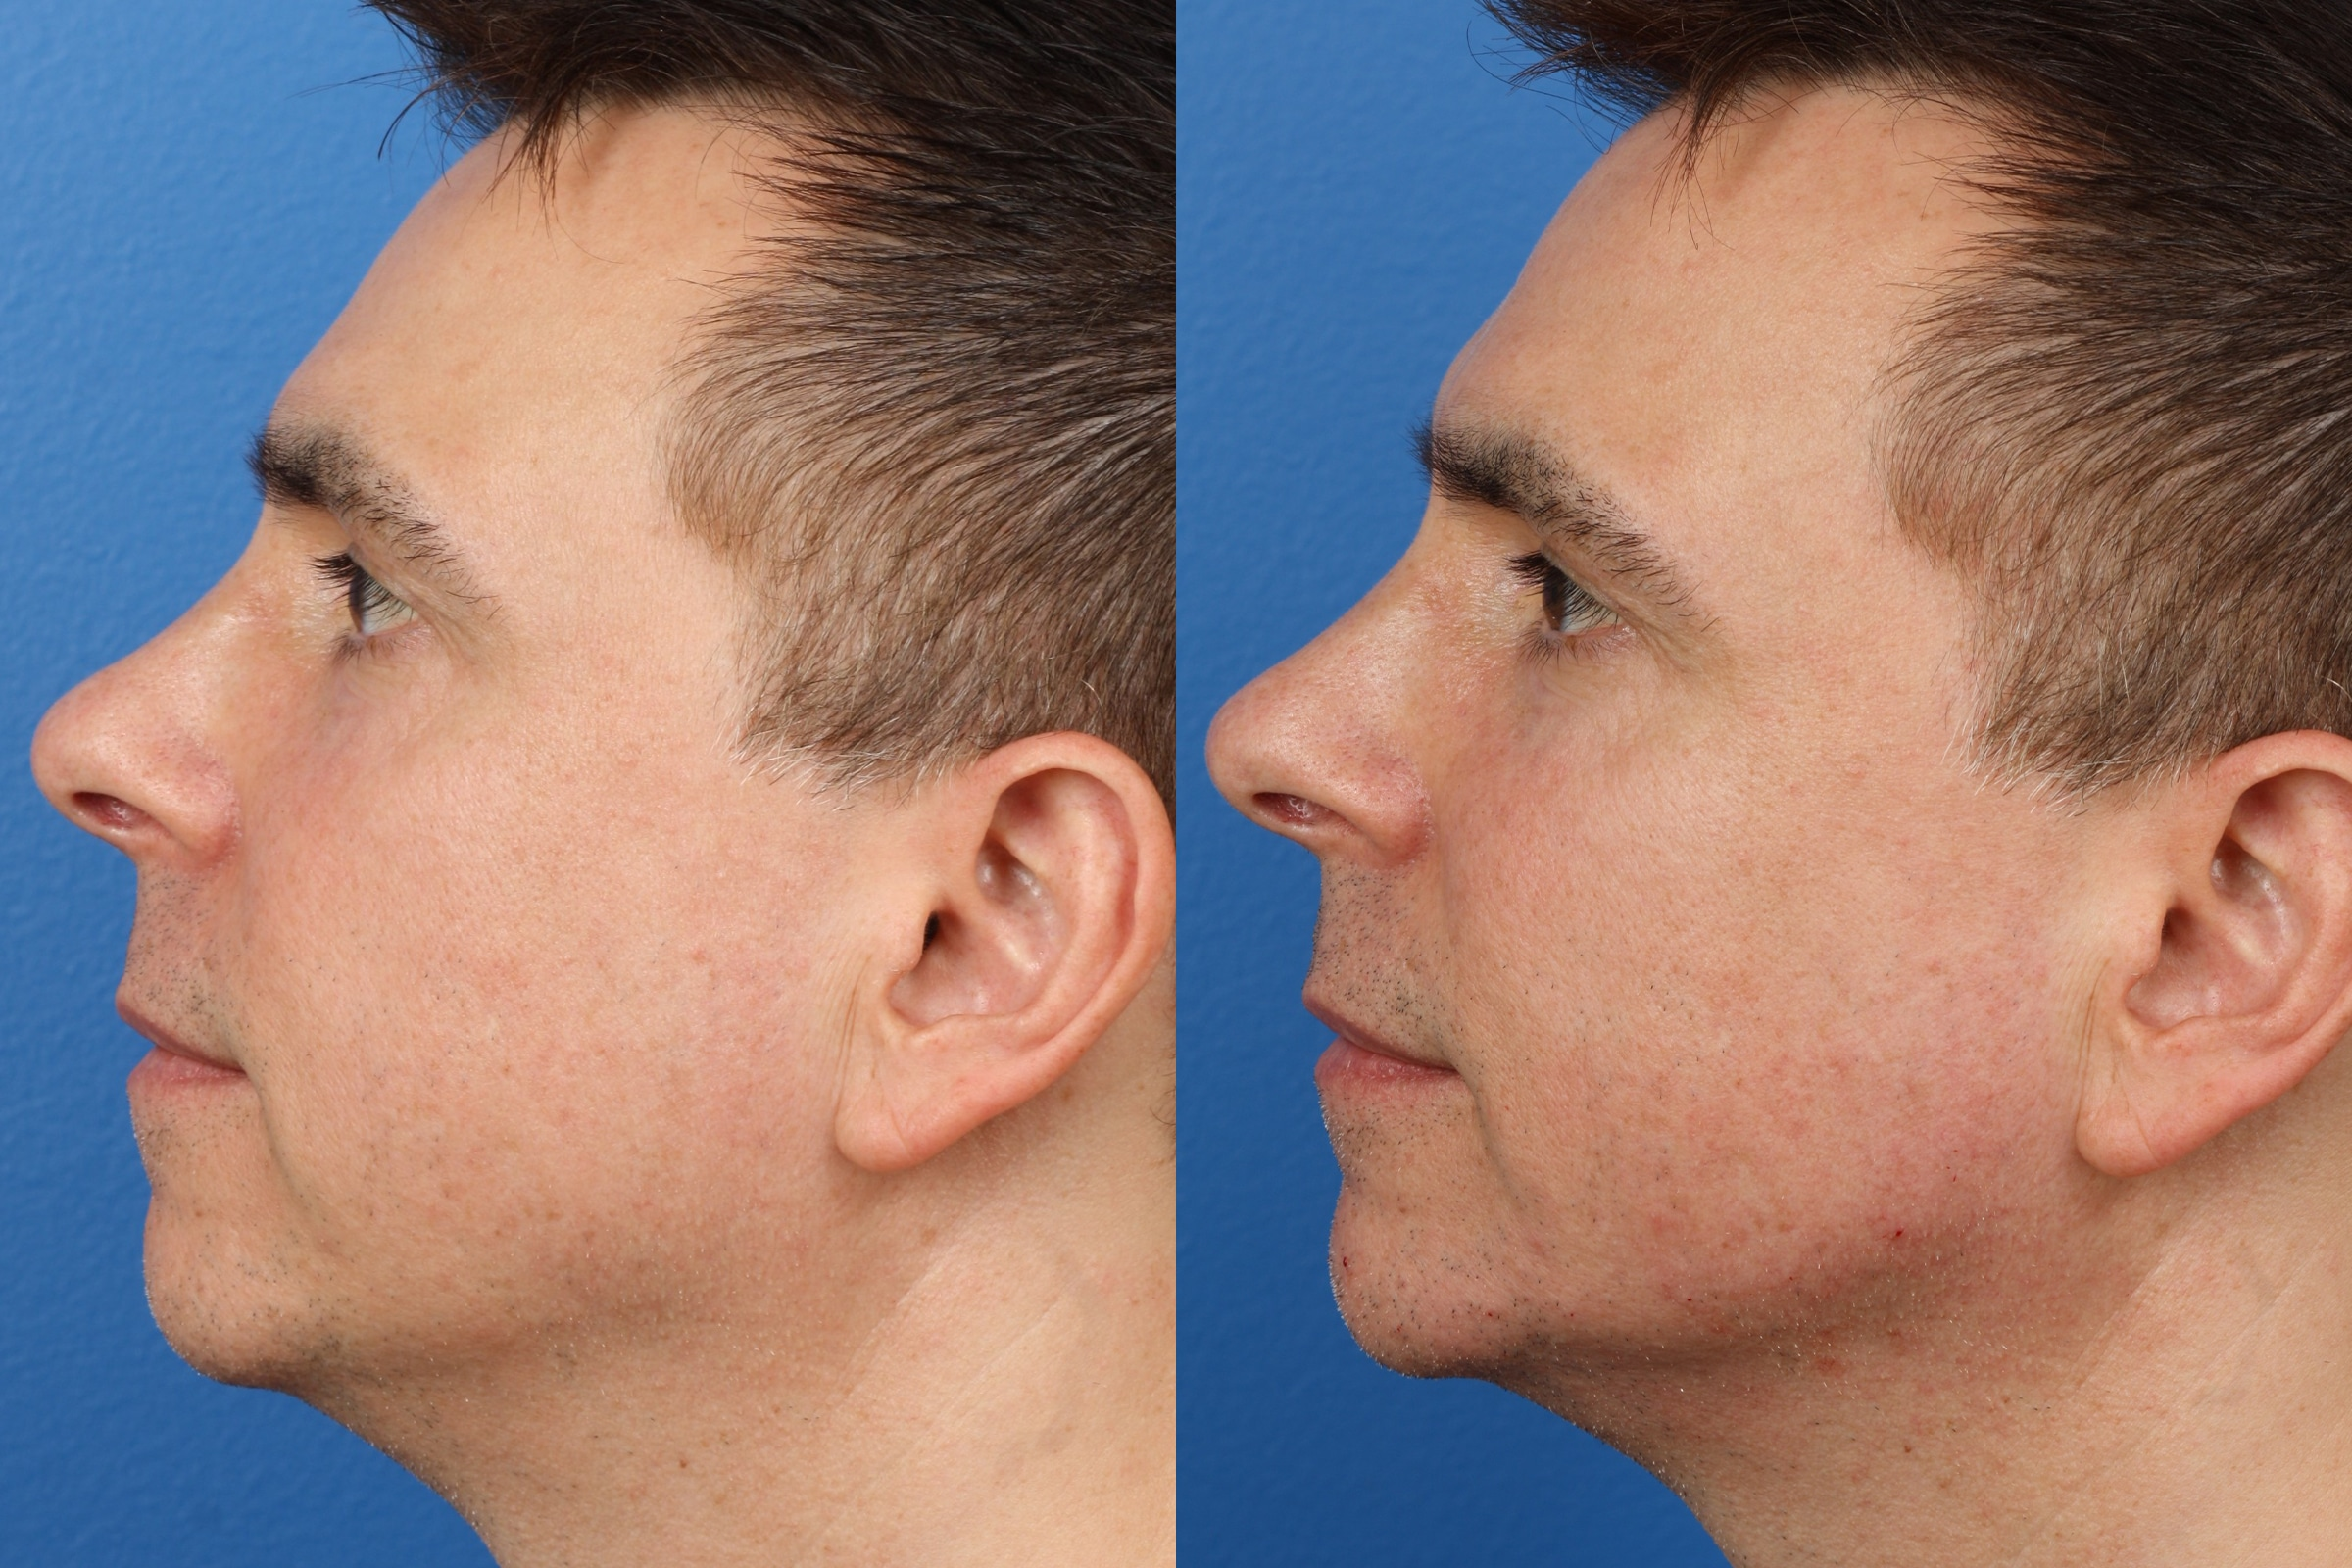 GI Jaw surgery before and after in new york